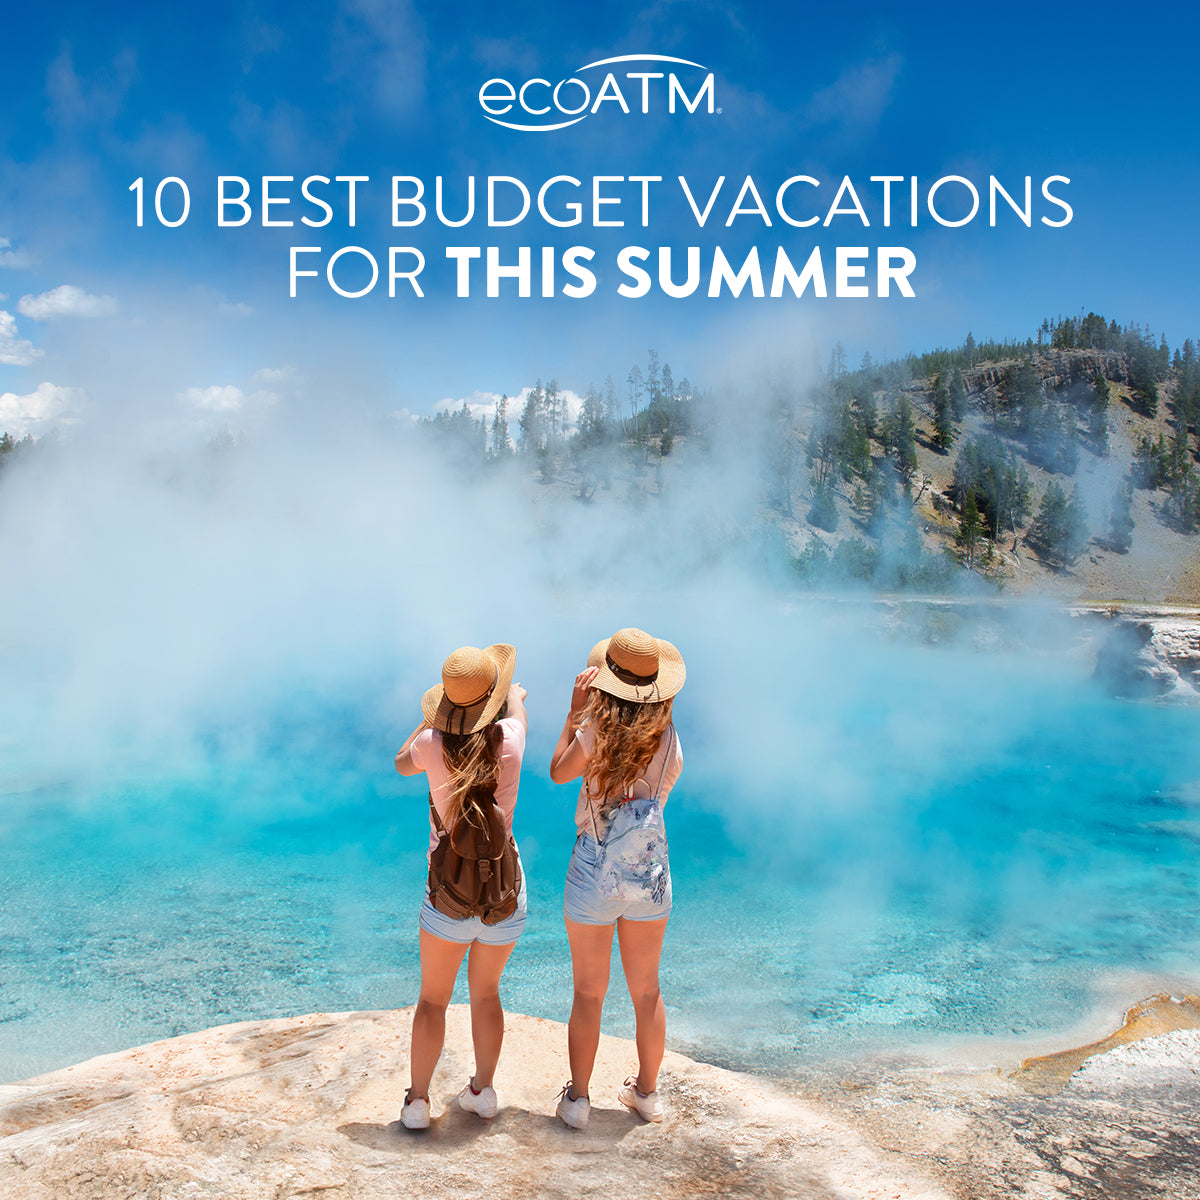 10 best budget vacation for the summer